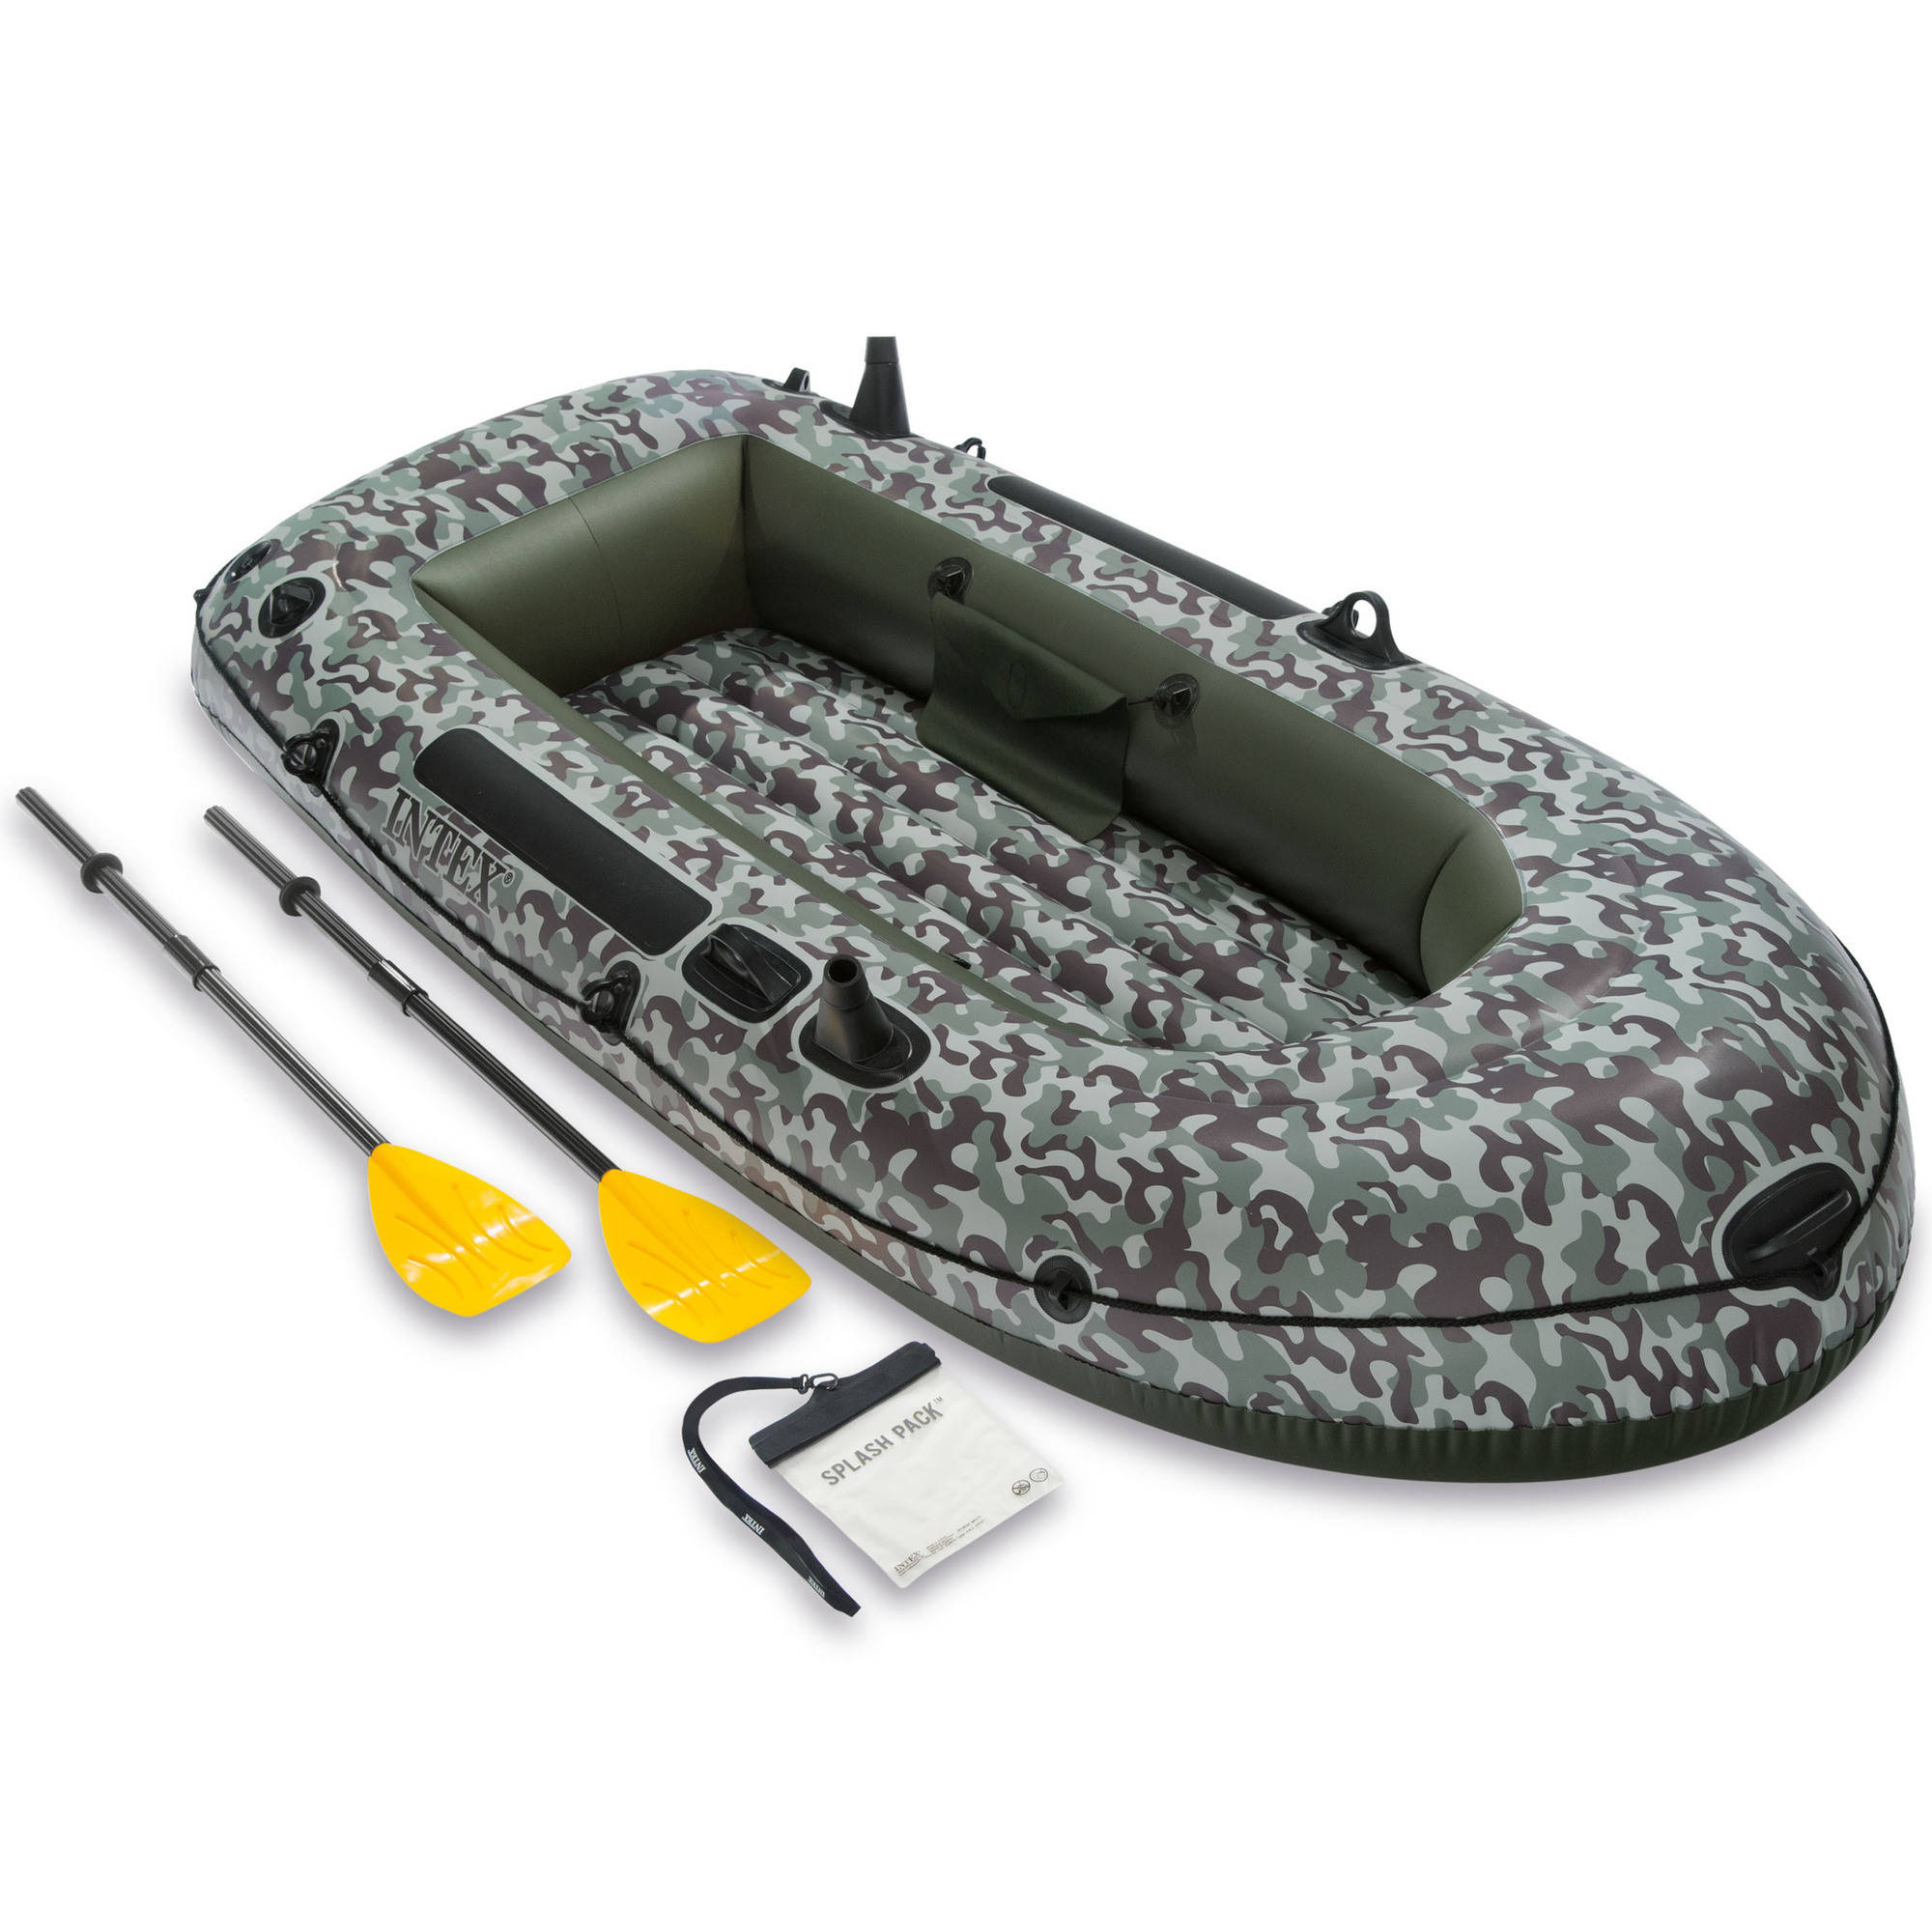 Intex Inflatable Camo Seahawk 2 Two-Person Boat with Oars and Pump, Green